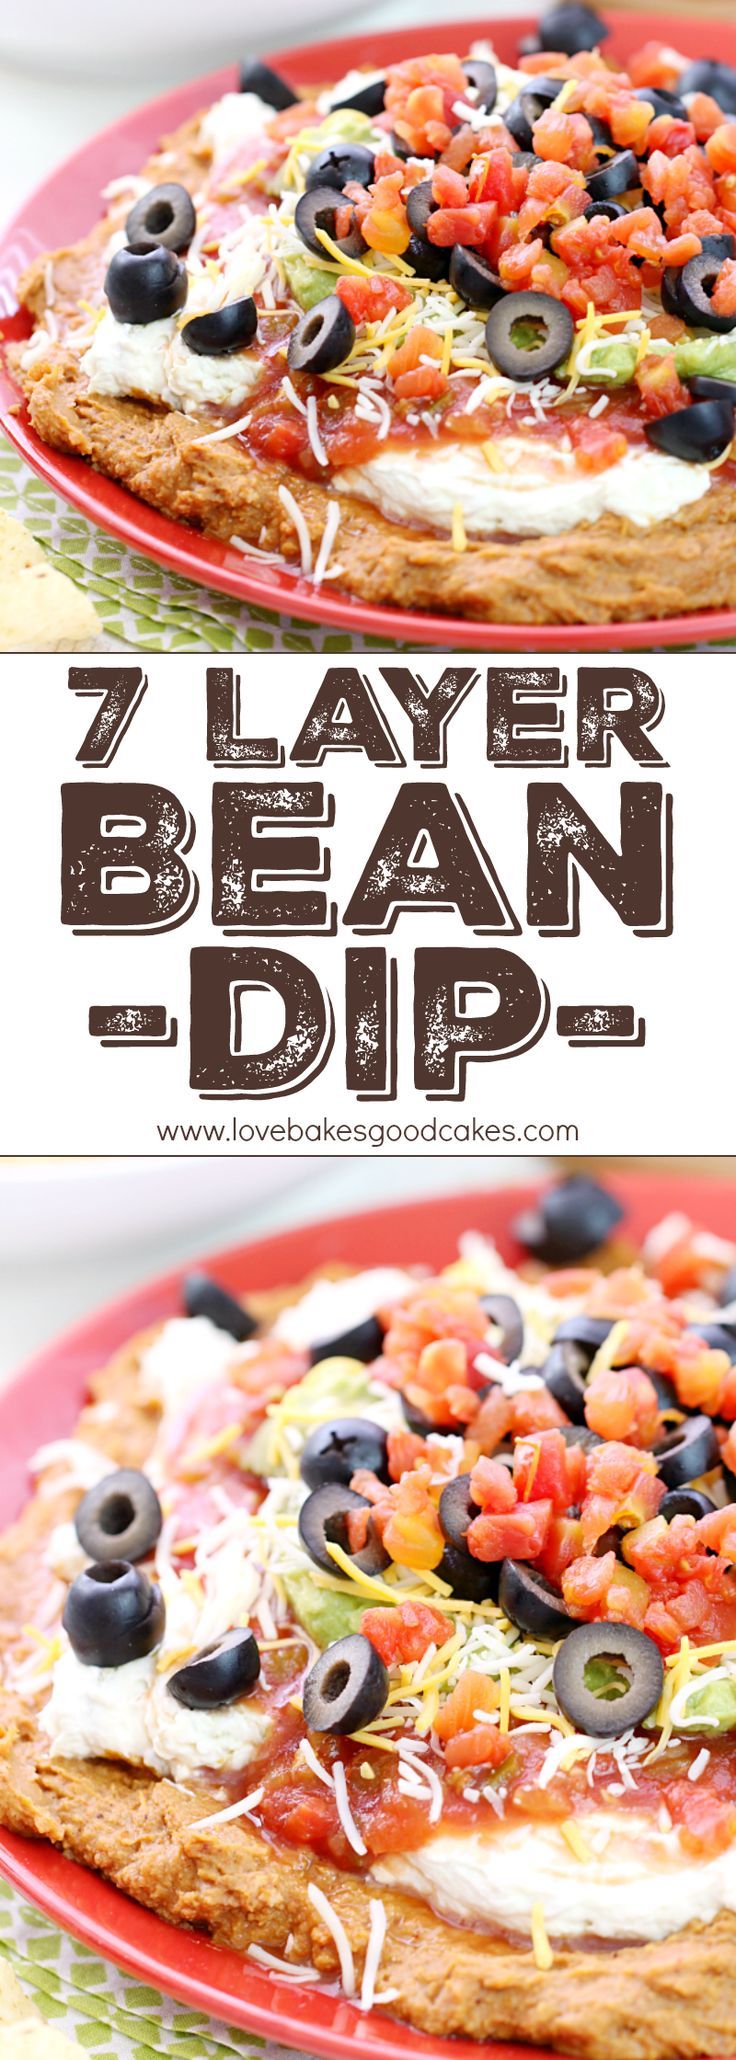 The classic 7 Layer Bean Dip - just like you remember it! It's great for fiestas, potlucks, game day entertaining - or anytime you need a delicious and easy idea that is a real crowd-pleaser! AD #FlavorYourFiesta #JustSayOle @joseolecentral